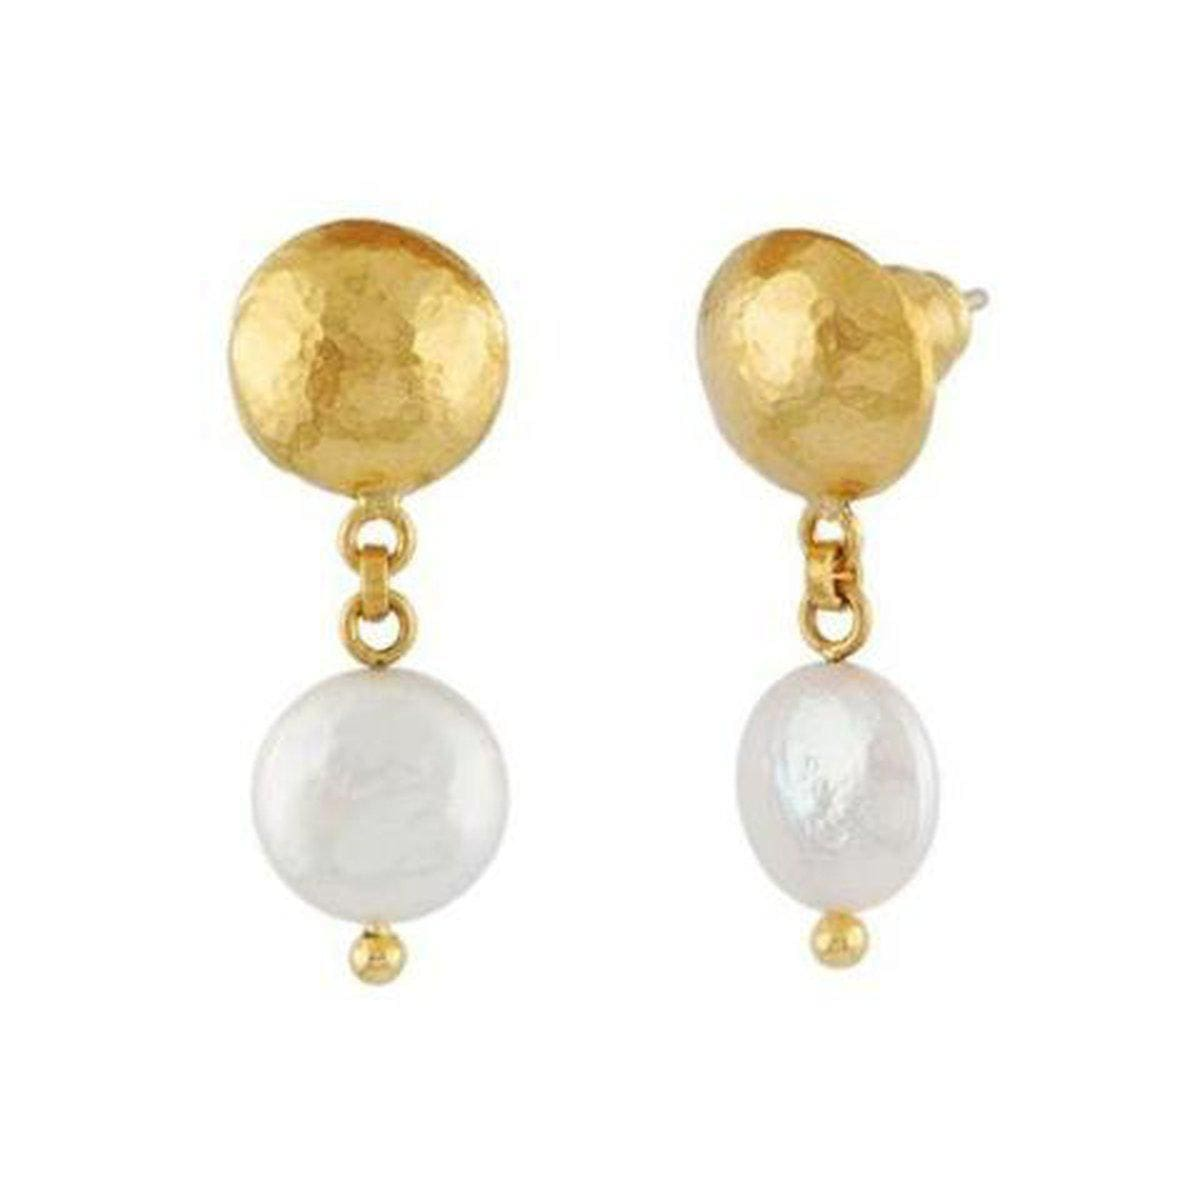 Oyster 24K Gold Pearl Earrings - LTE-BWP-S-SD-GURHAN-Renee Taylor Gallery